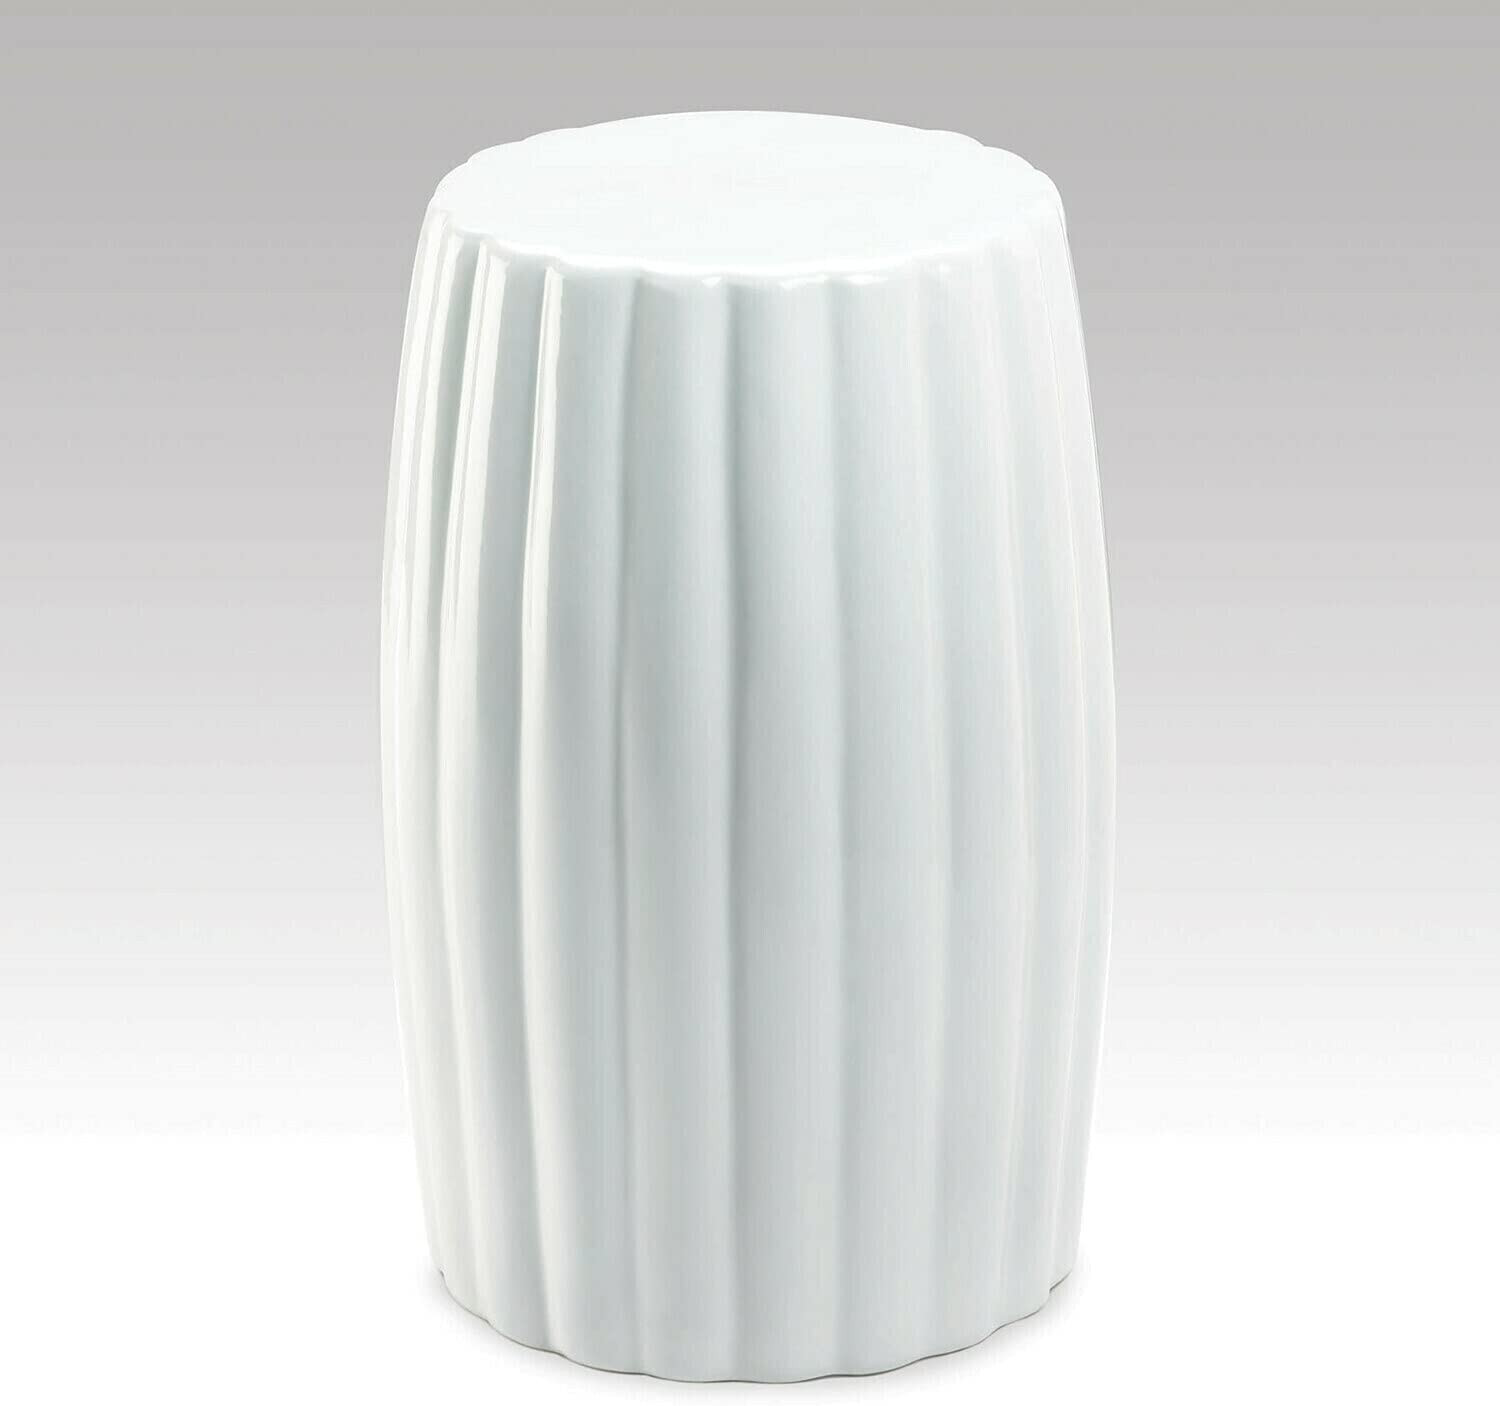 Gallery of Light Glossy White Ceramic Max 46% OFF Side Ranking TOP6 Stool Or Table